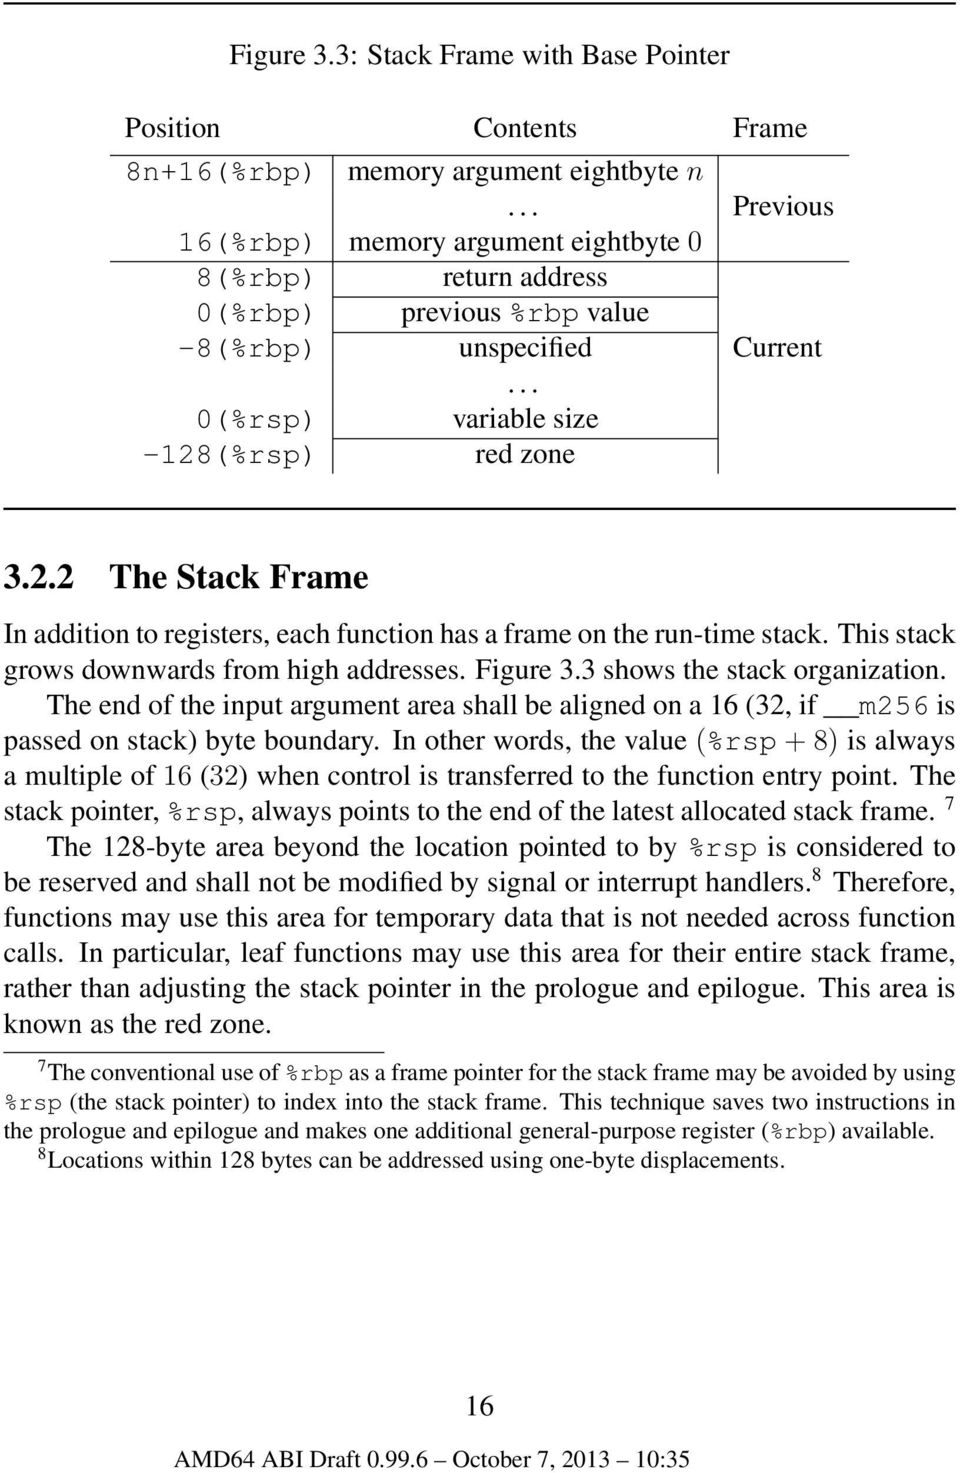 (%rsp) red zone 3.2.2 The Stack Frame In addition to registers, each function has a frame on the run-time stack. This stack grows downwards from high addresses. Figure 3.